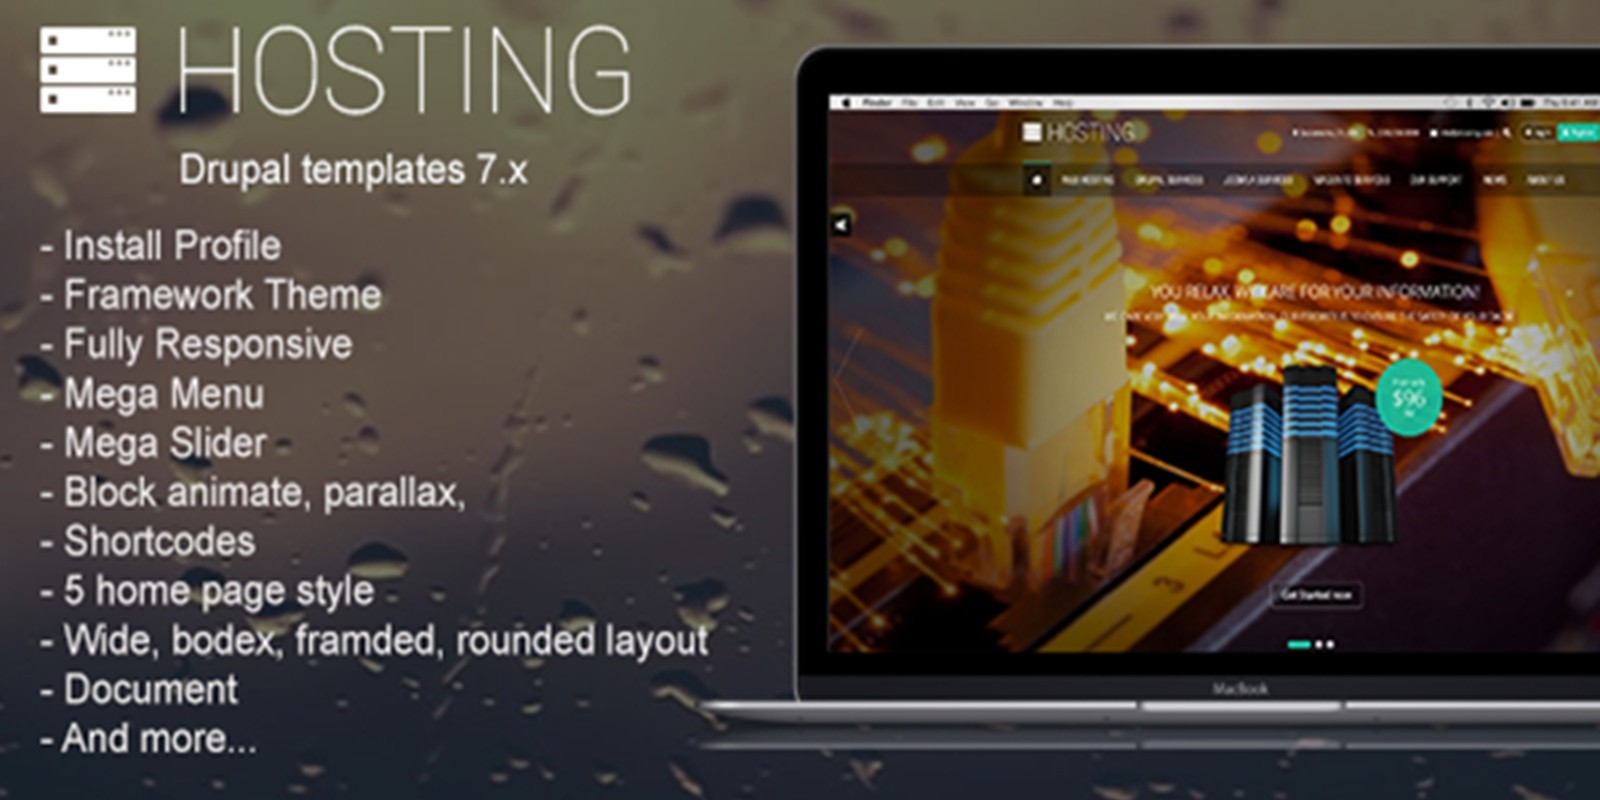 Hosting - Creative Drupal Theme